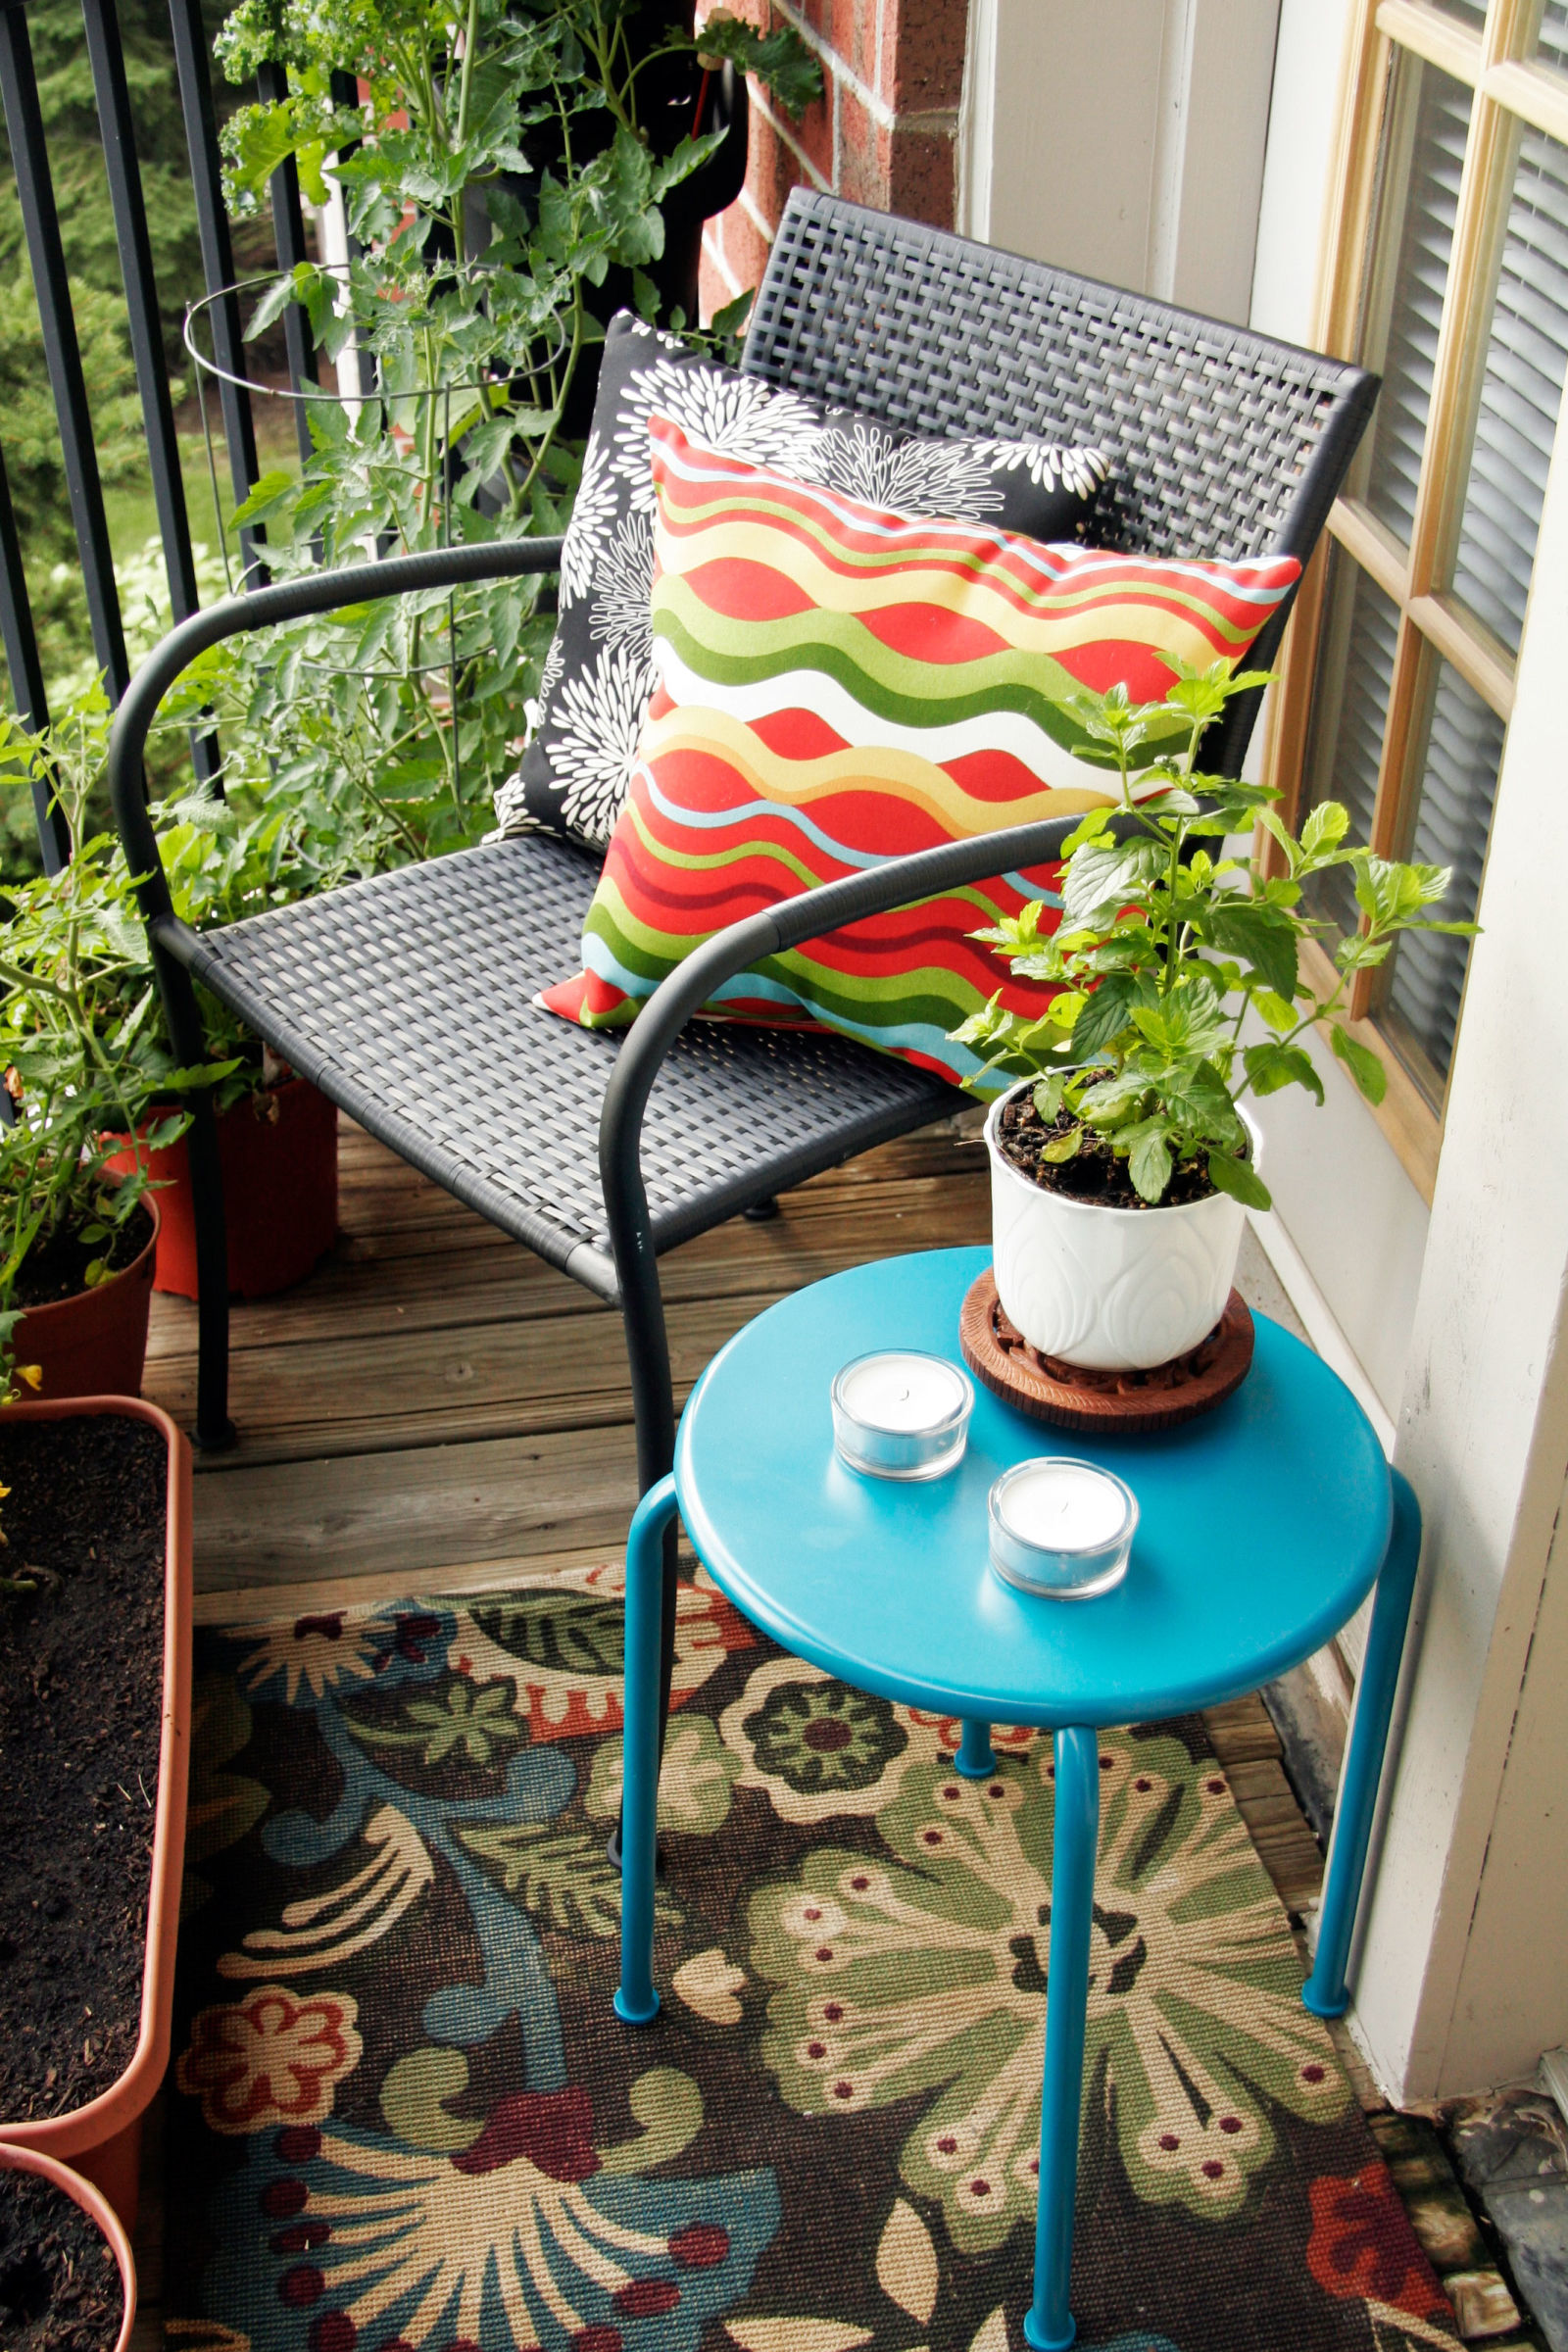 Patio Decorating Ideas small outdoor decor ideas - decorate your small yard or patio